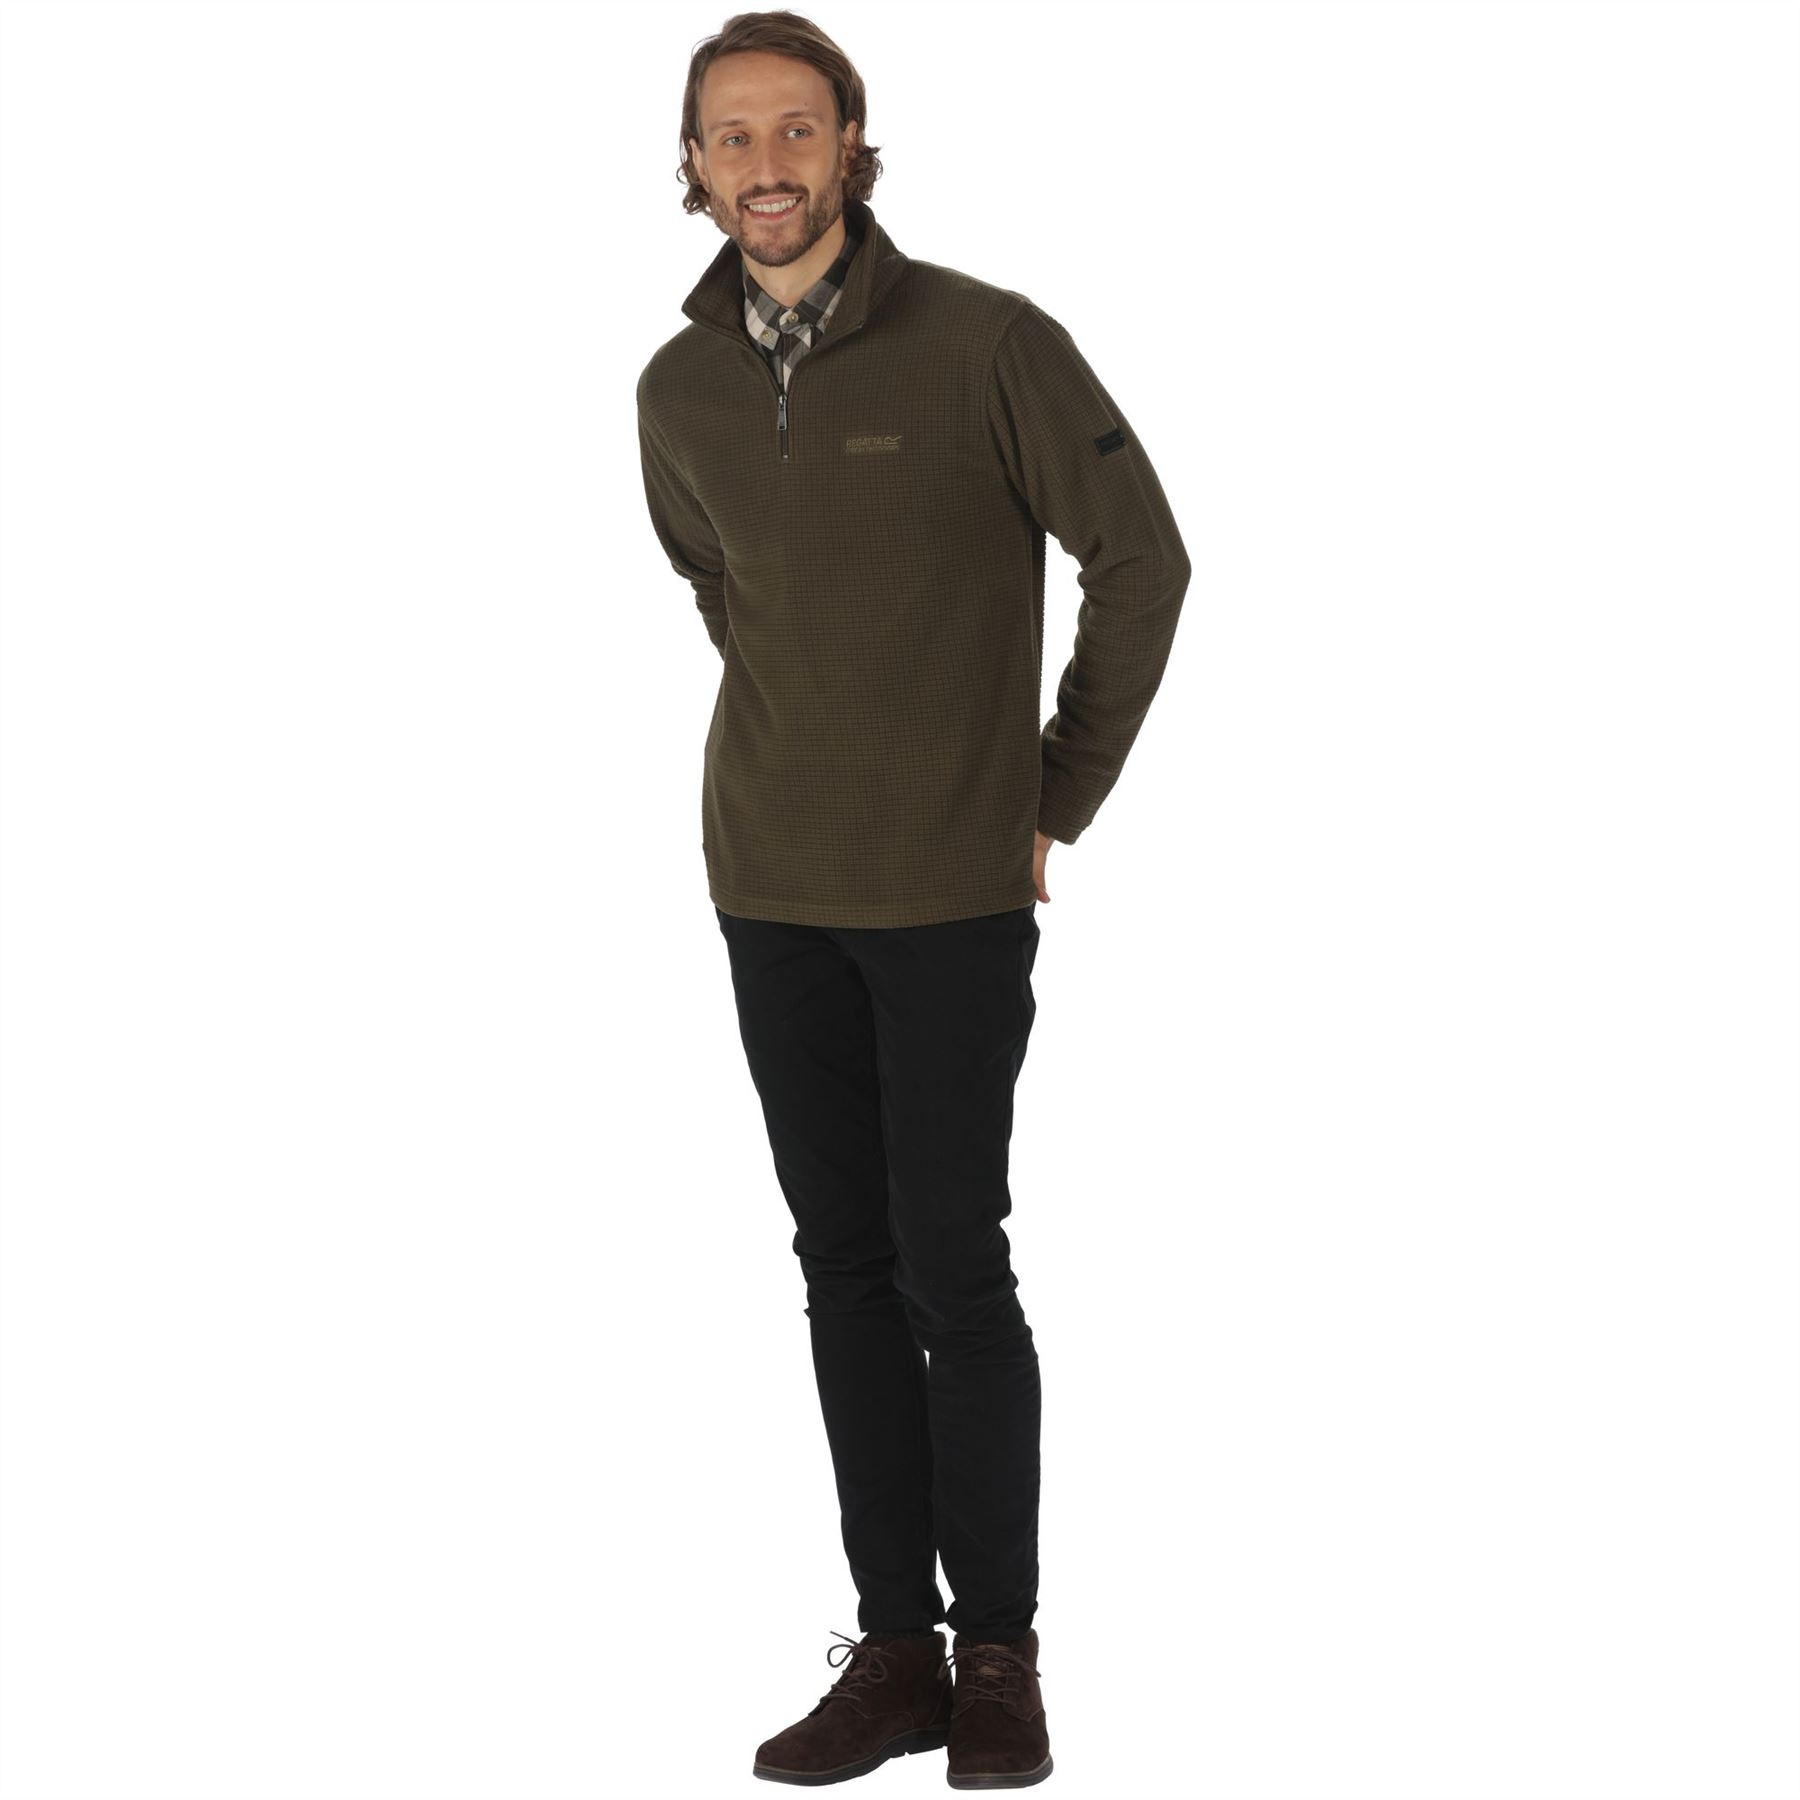 Regatta-Elgon-para-hombre-Half-Zip-Fleece-Pullover-Jumper-Top-RMA236 miniatura 14